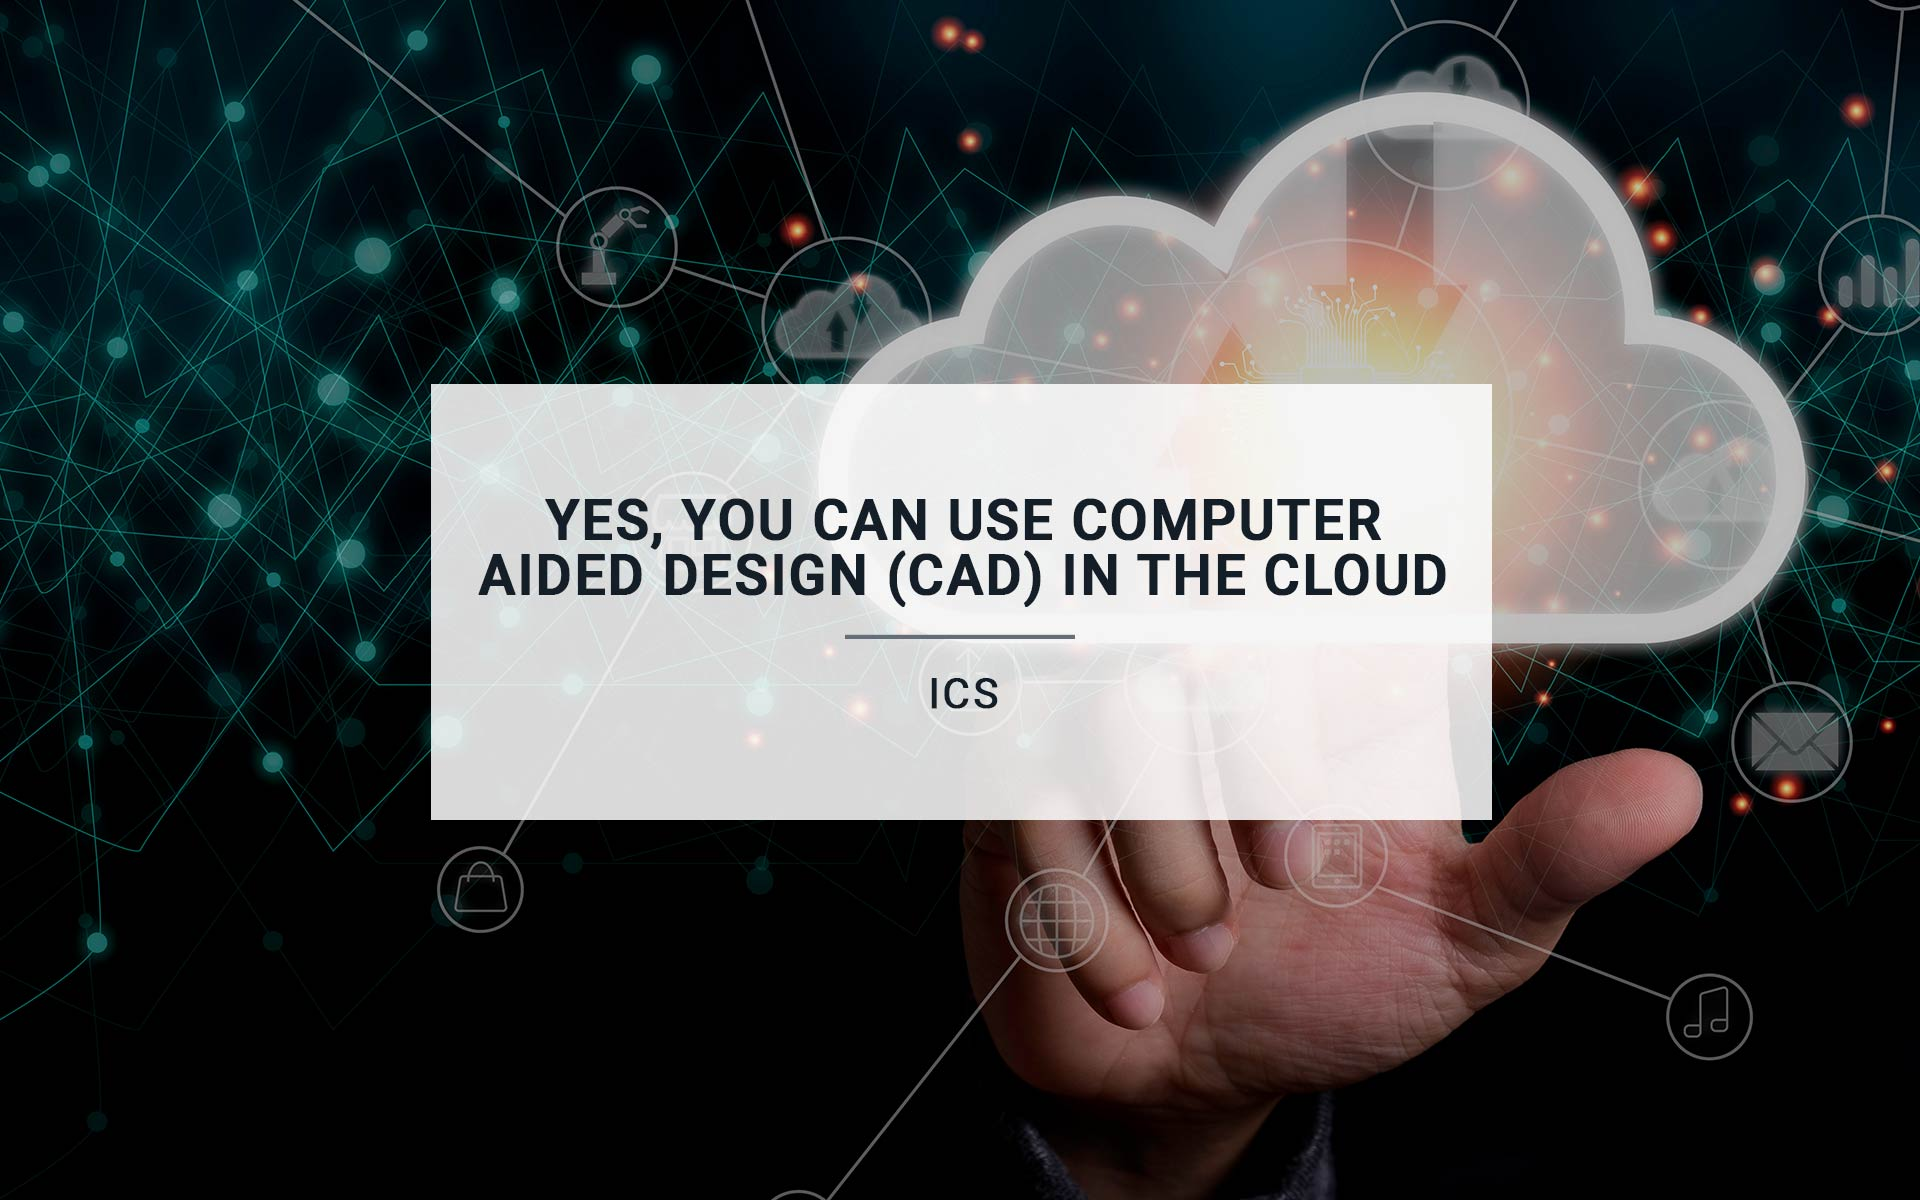 Yes, You Can Use Computer Aided Design (CAD) In the Cloud